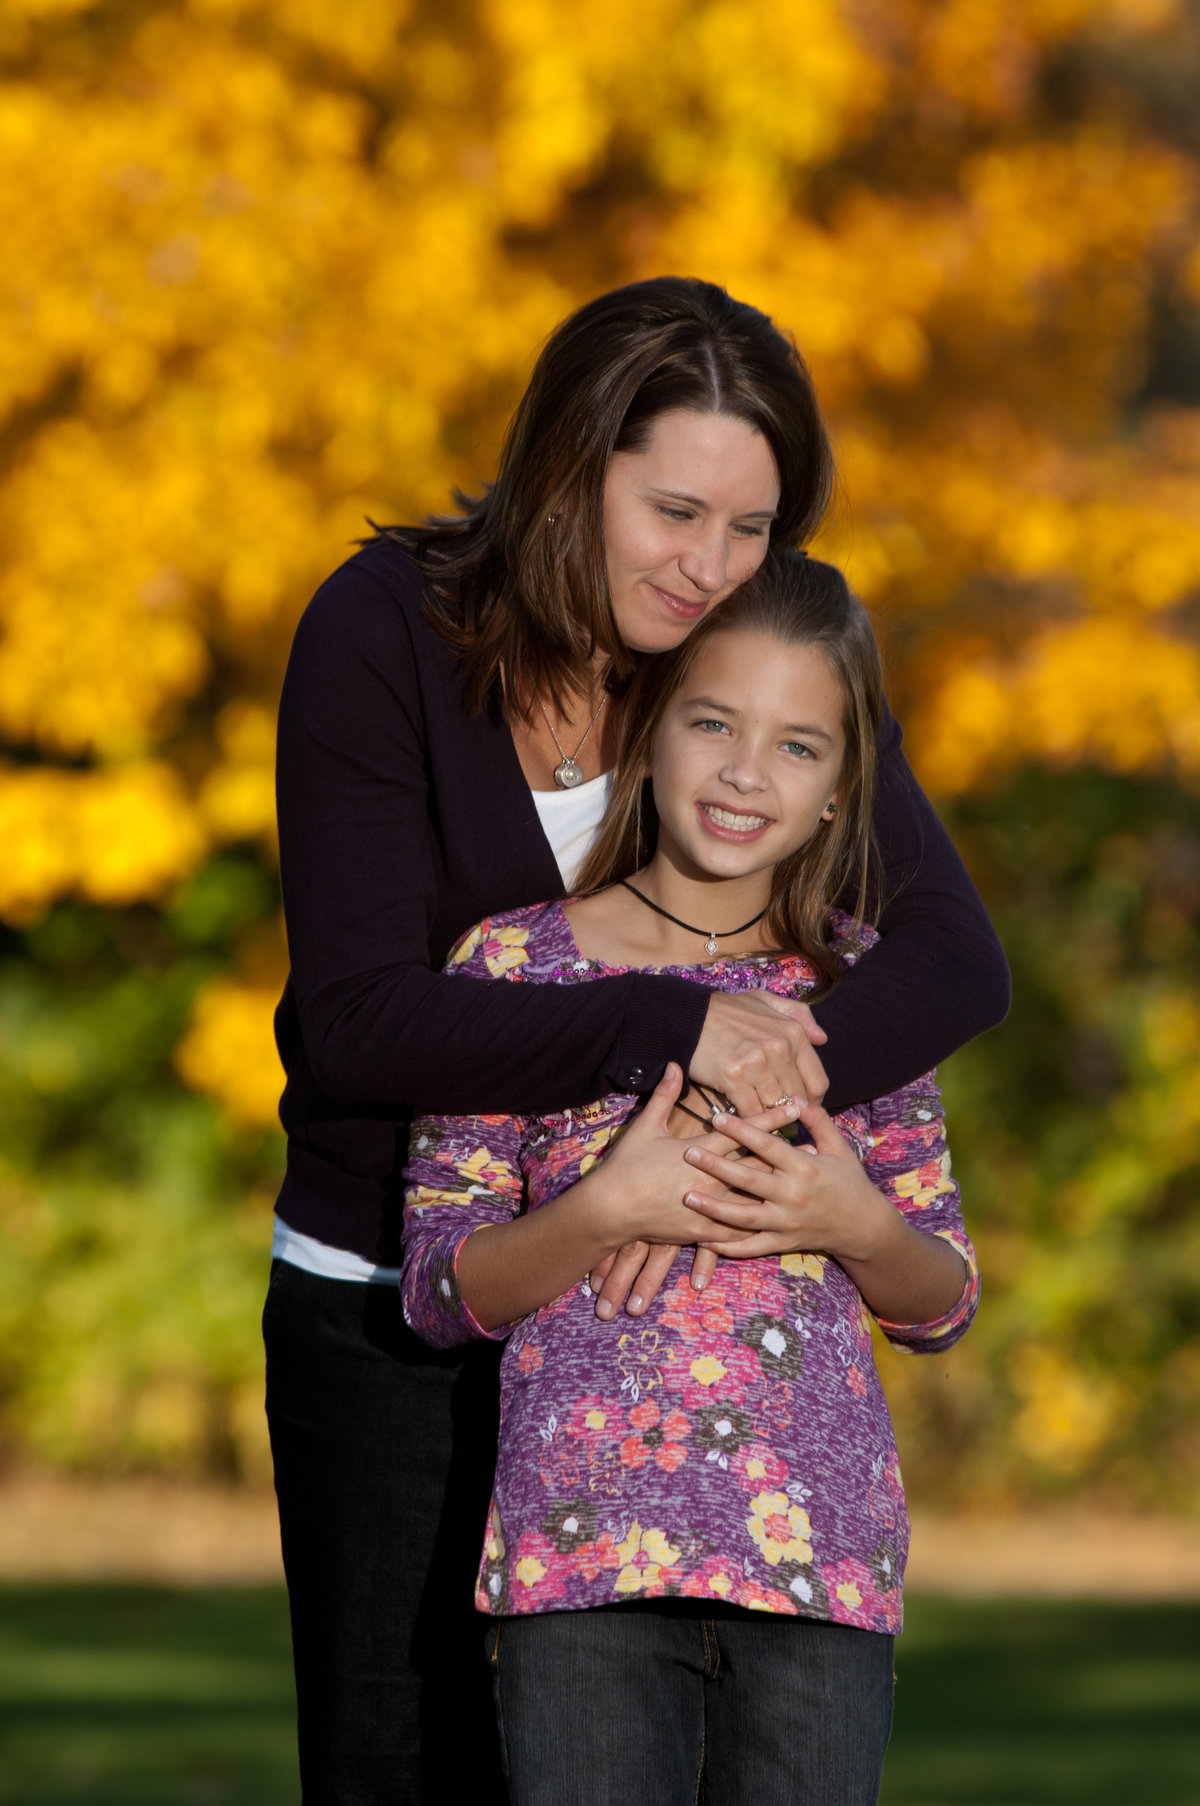 Mom hugging her daughter during a fall family portrait